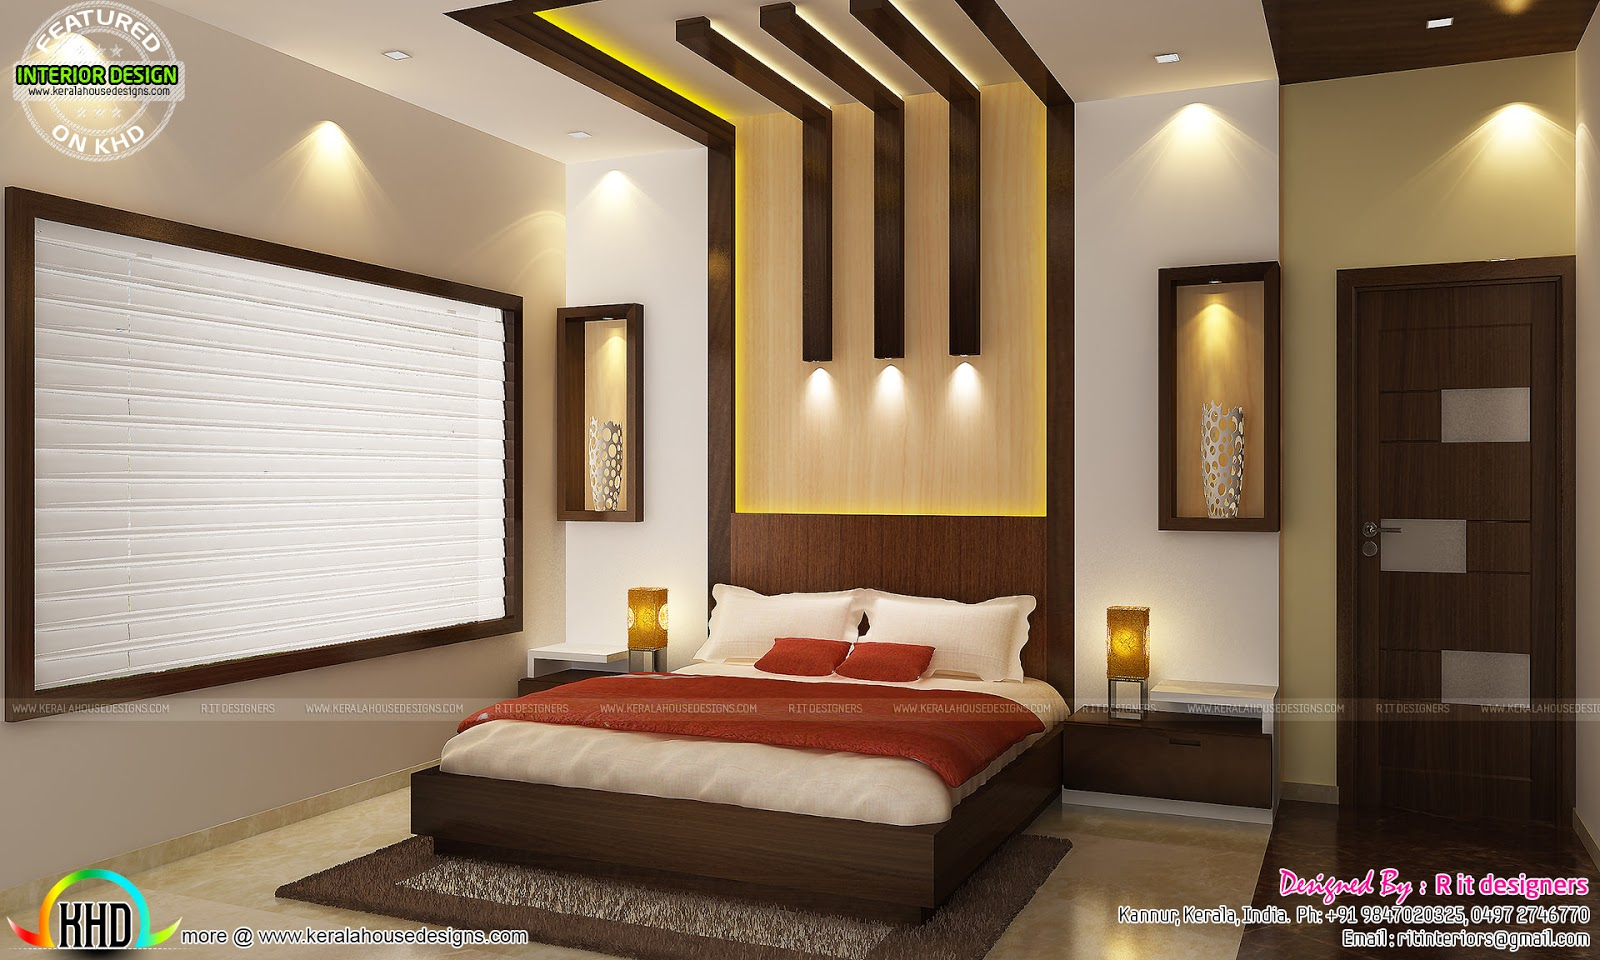 Kitchen living bedroom dining interior decor kerala for Kitchen and bedroom designs